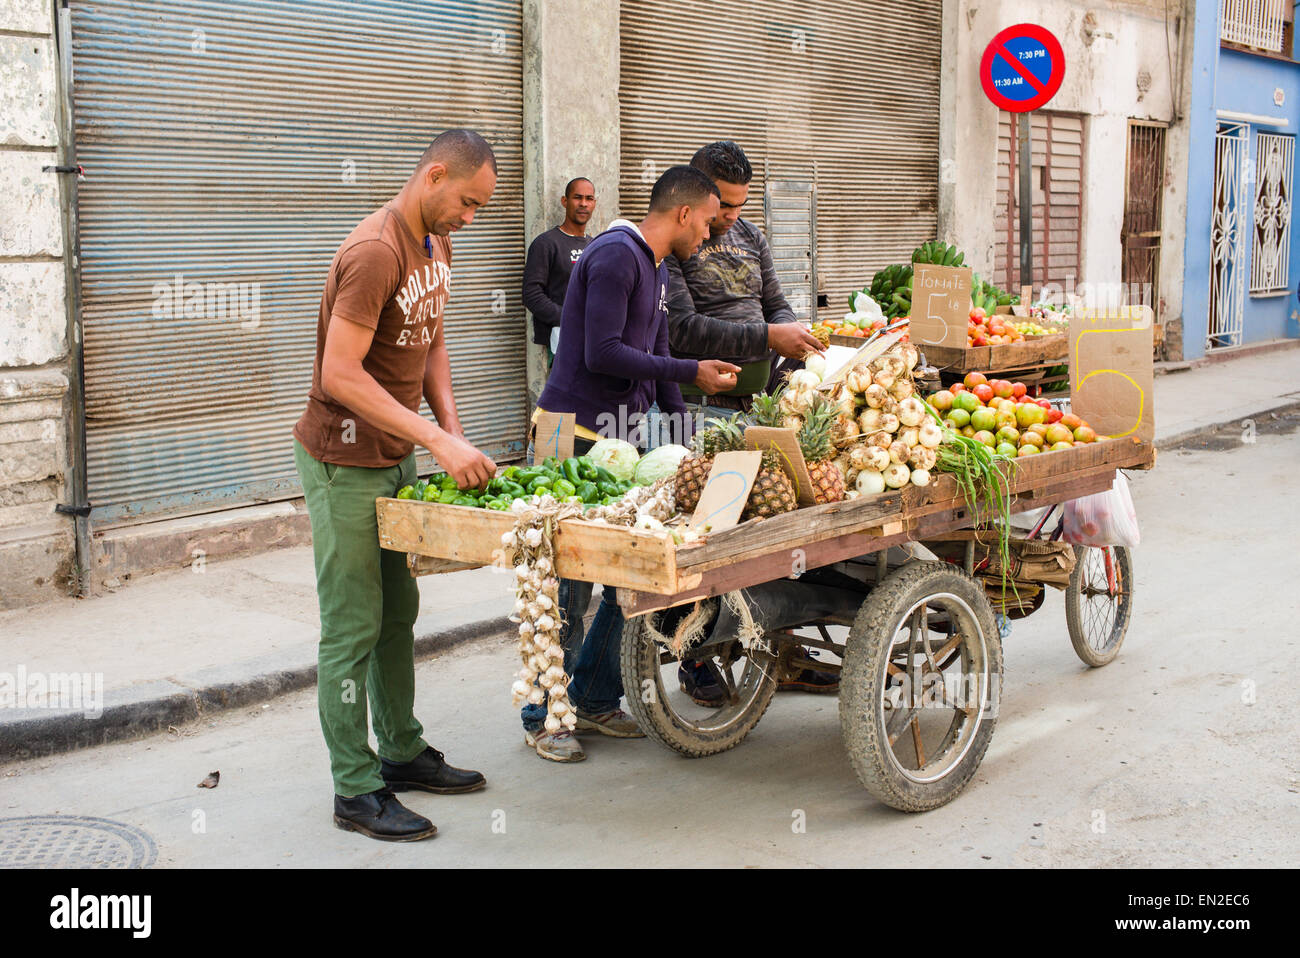 Men shopping from a fruit and vegetable cart on the streets of old Havana, Cuba. - Stock Image